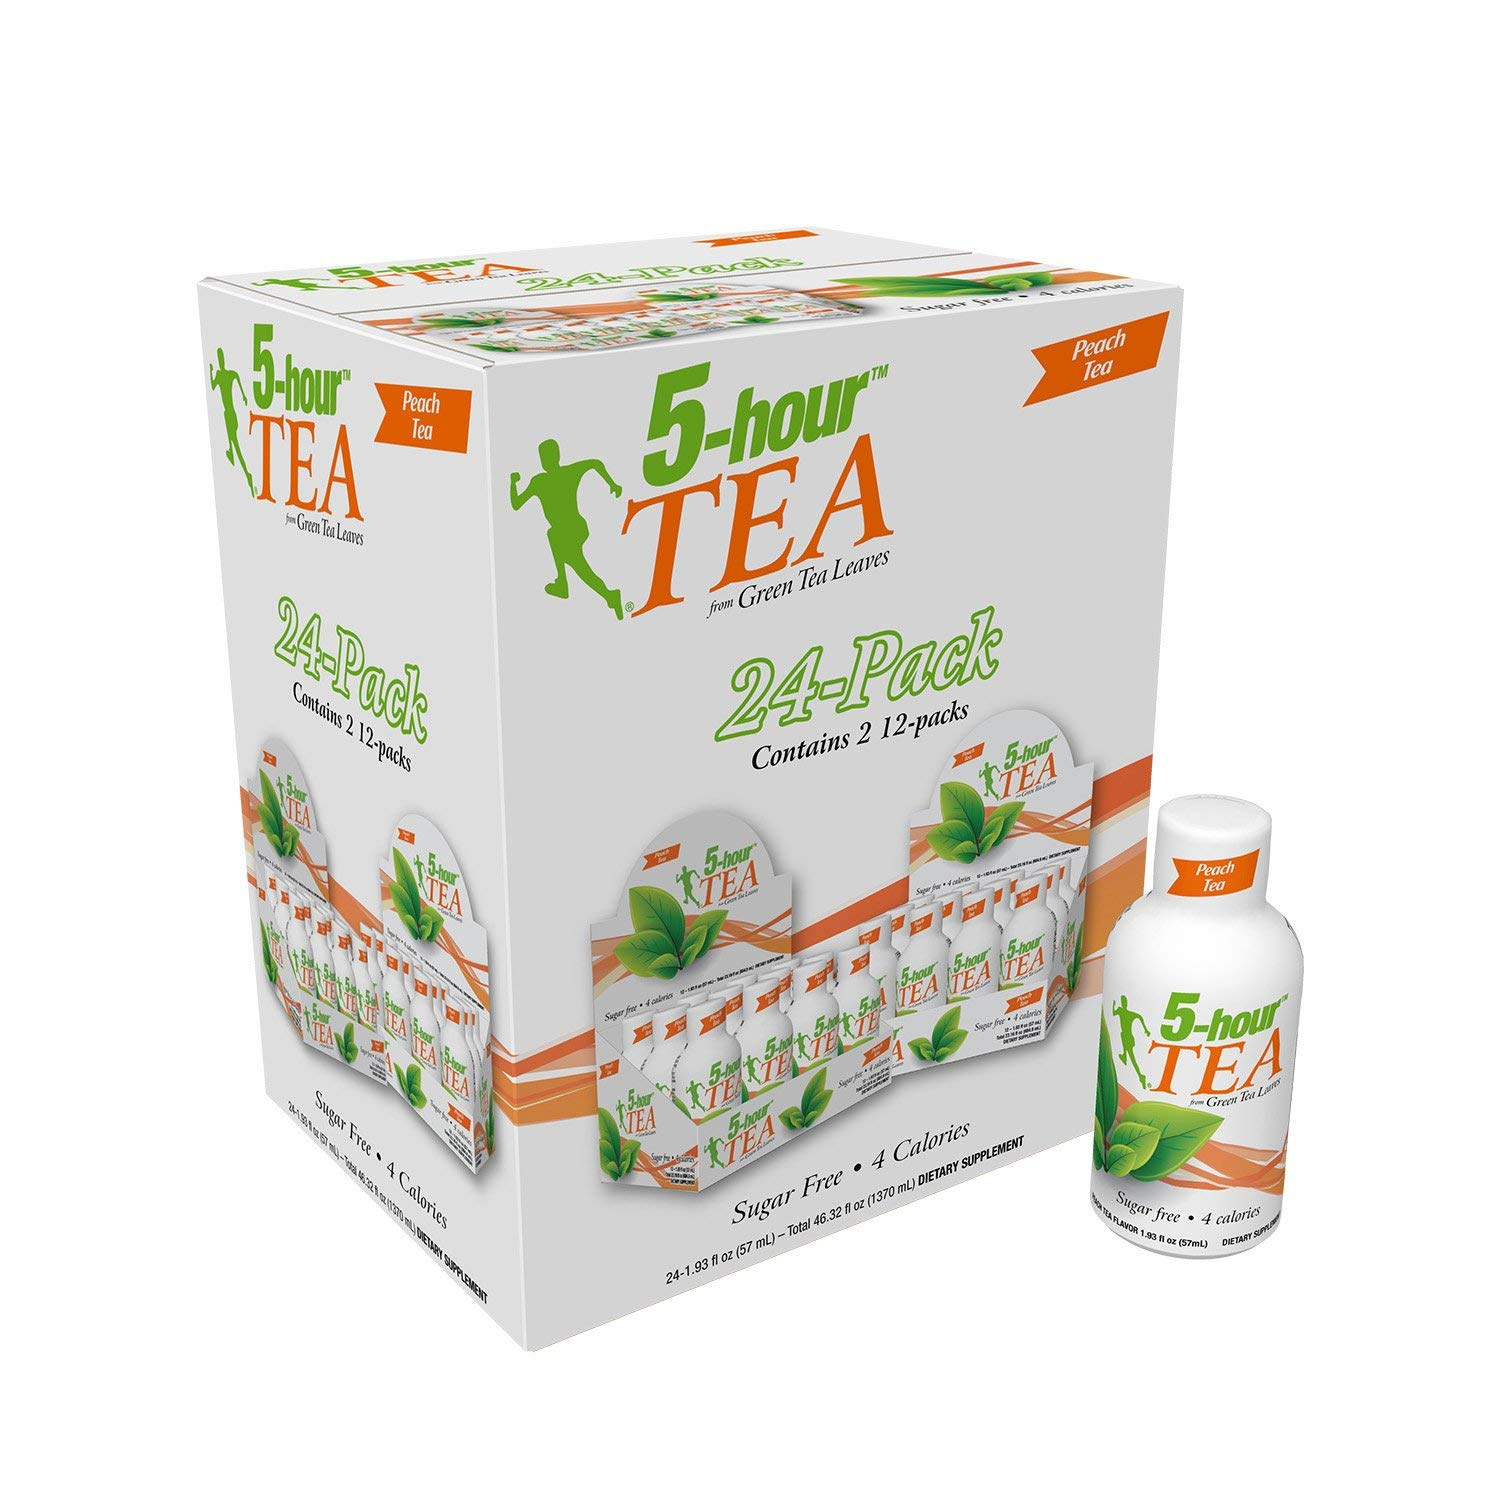 5-hour Green TEA - Peach Flavored - 24 Count by 5-Hours (Image #1)